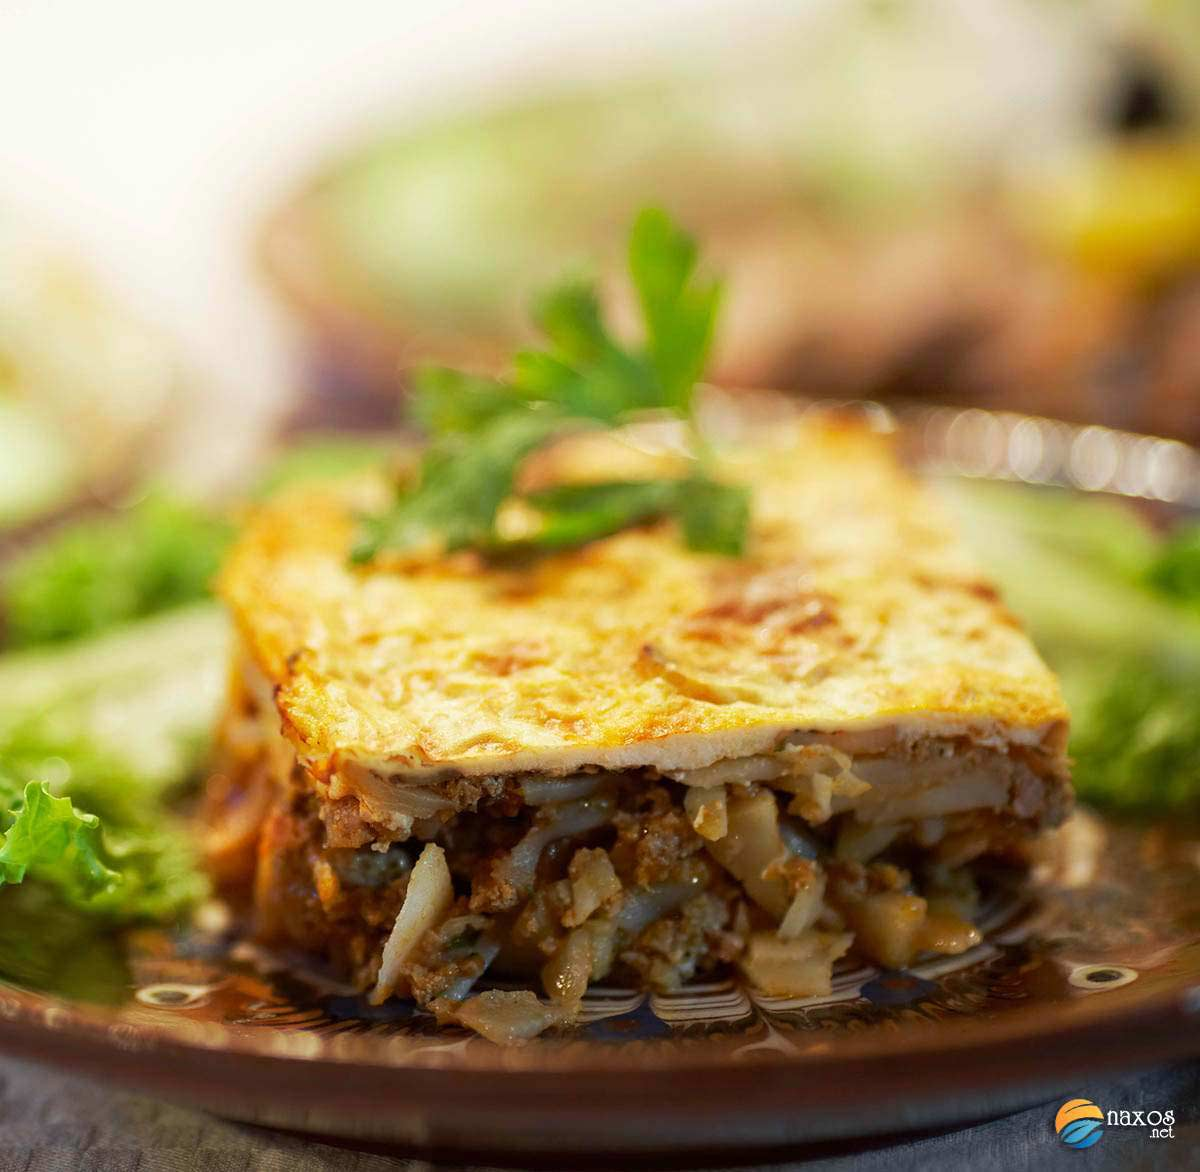 The traditional recipe for moussaka